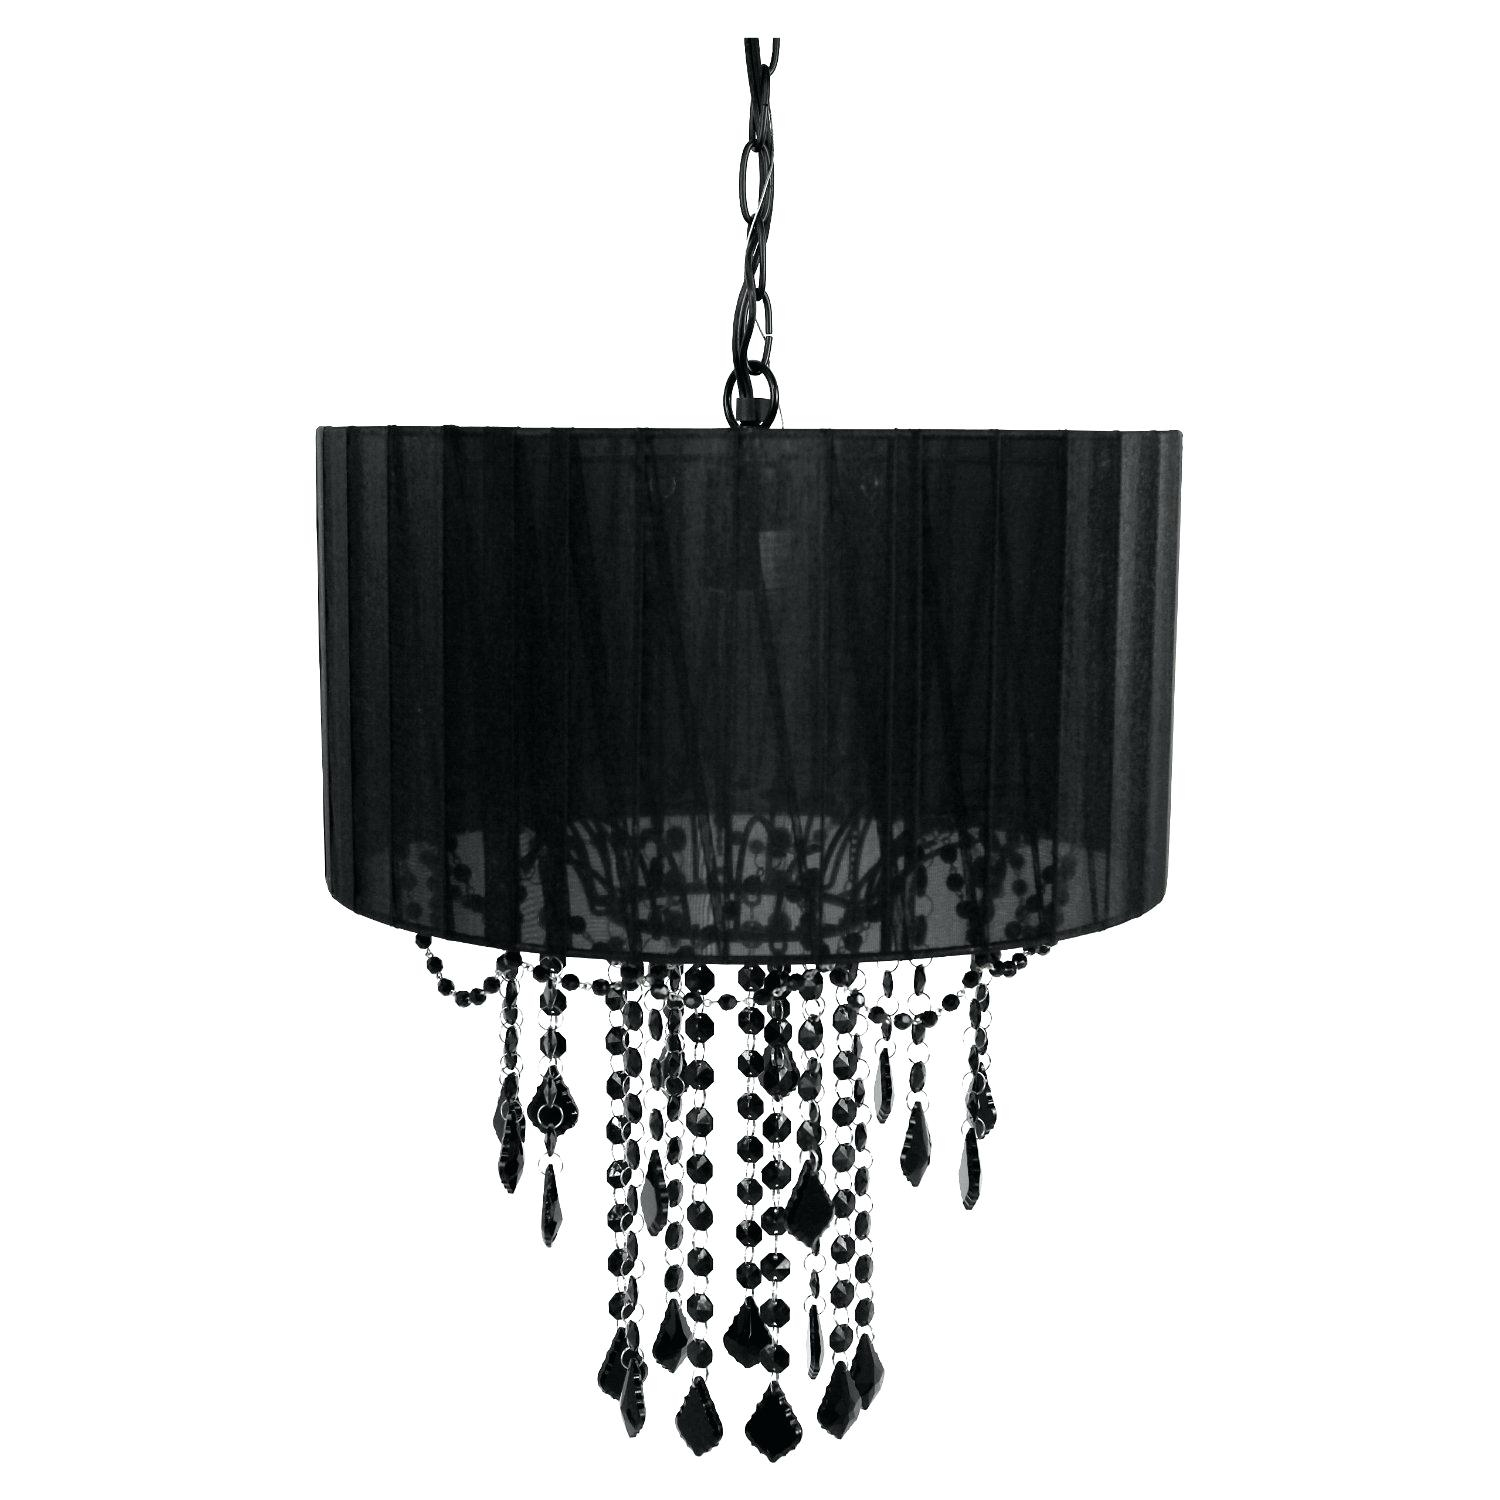 Fake Candle Chandelier Awesome Black Chandeliers For Girls Rooms Regarding Italian Chandeliers Contemporary (Image 3 of 15)